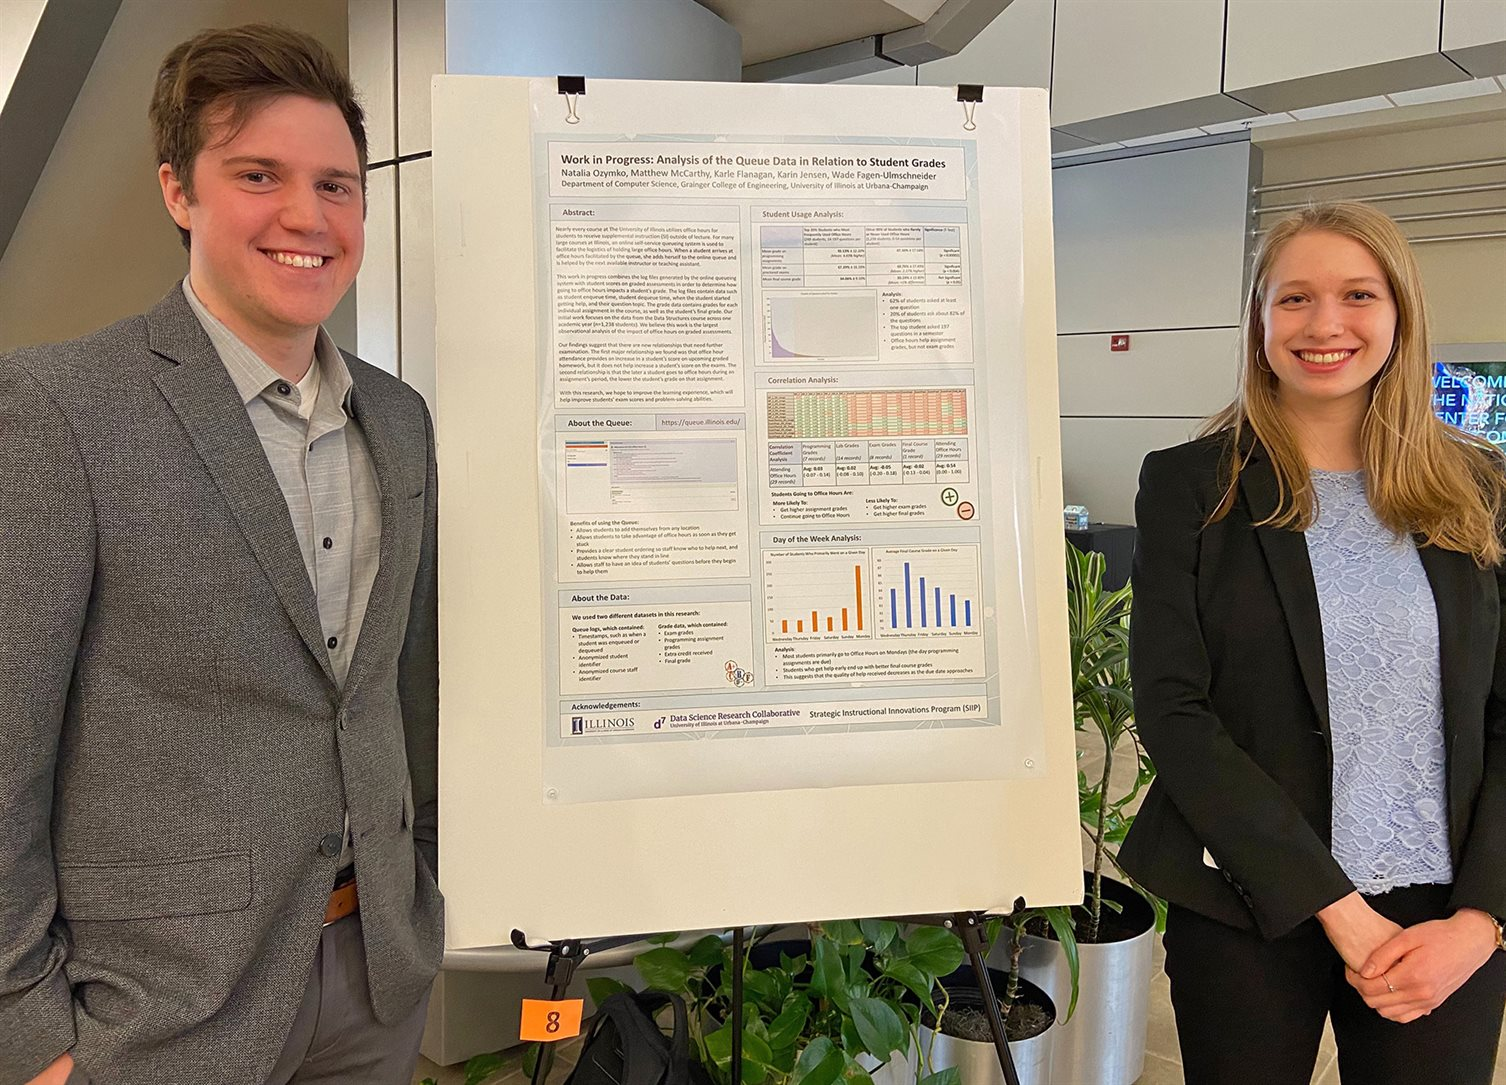 Prior to their June 2020 ASEE conference presentation, CS senior Natalia Ozymko (right) and mathematics student Matthew McCarthy presented the results of their research at an NCSA-hosted poster session on campus.